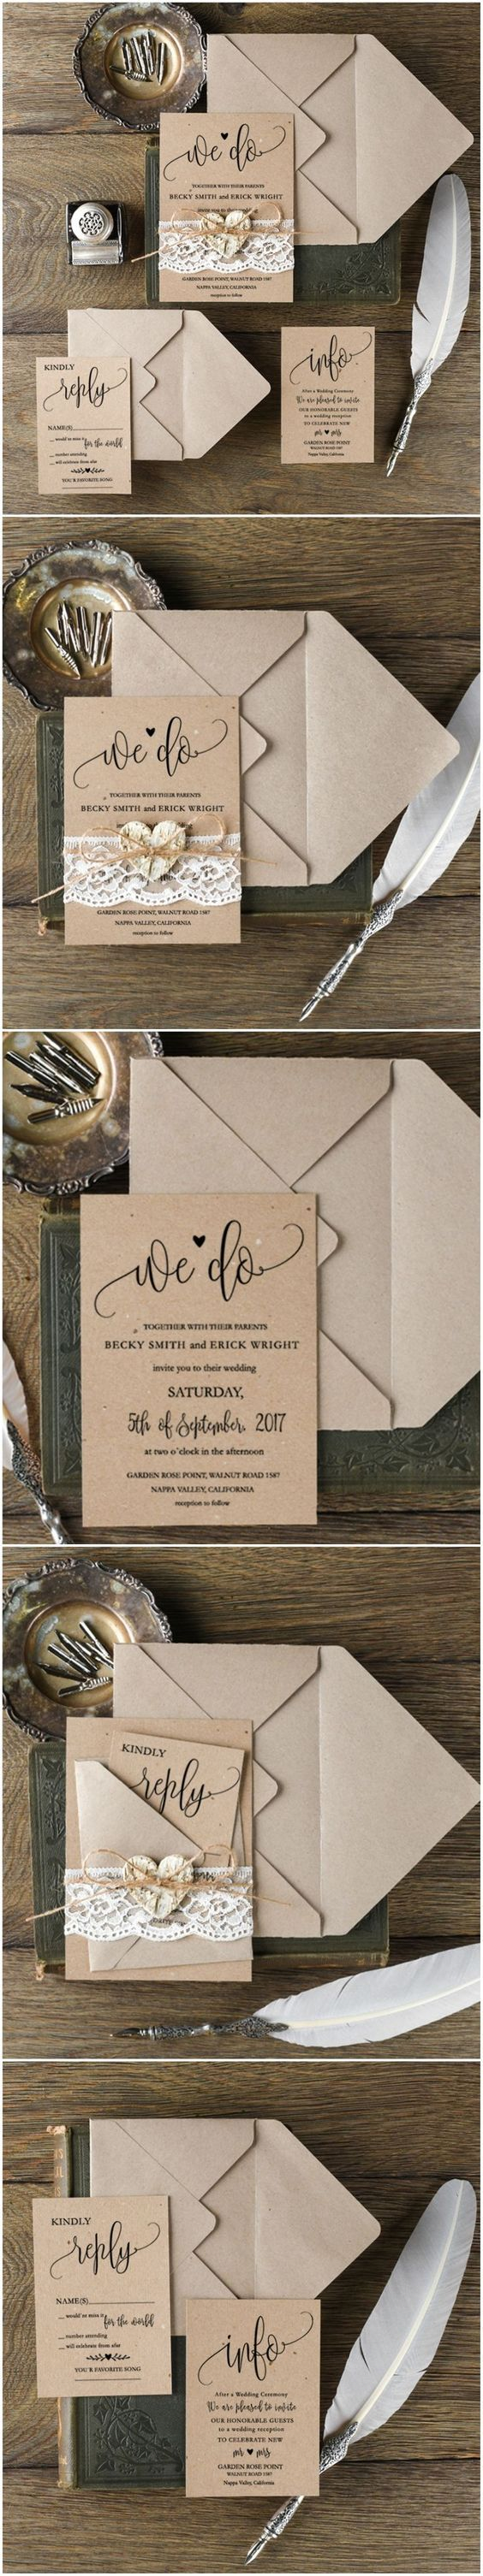 Wedding invitations calligraphy romantic lace lace weddings and